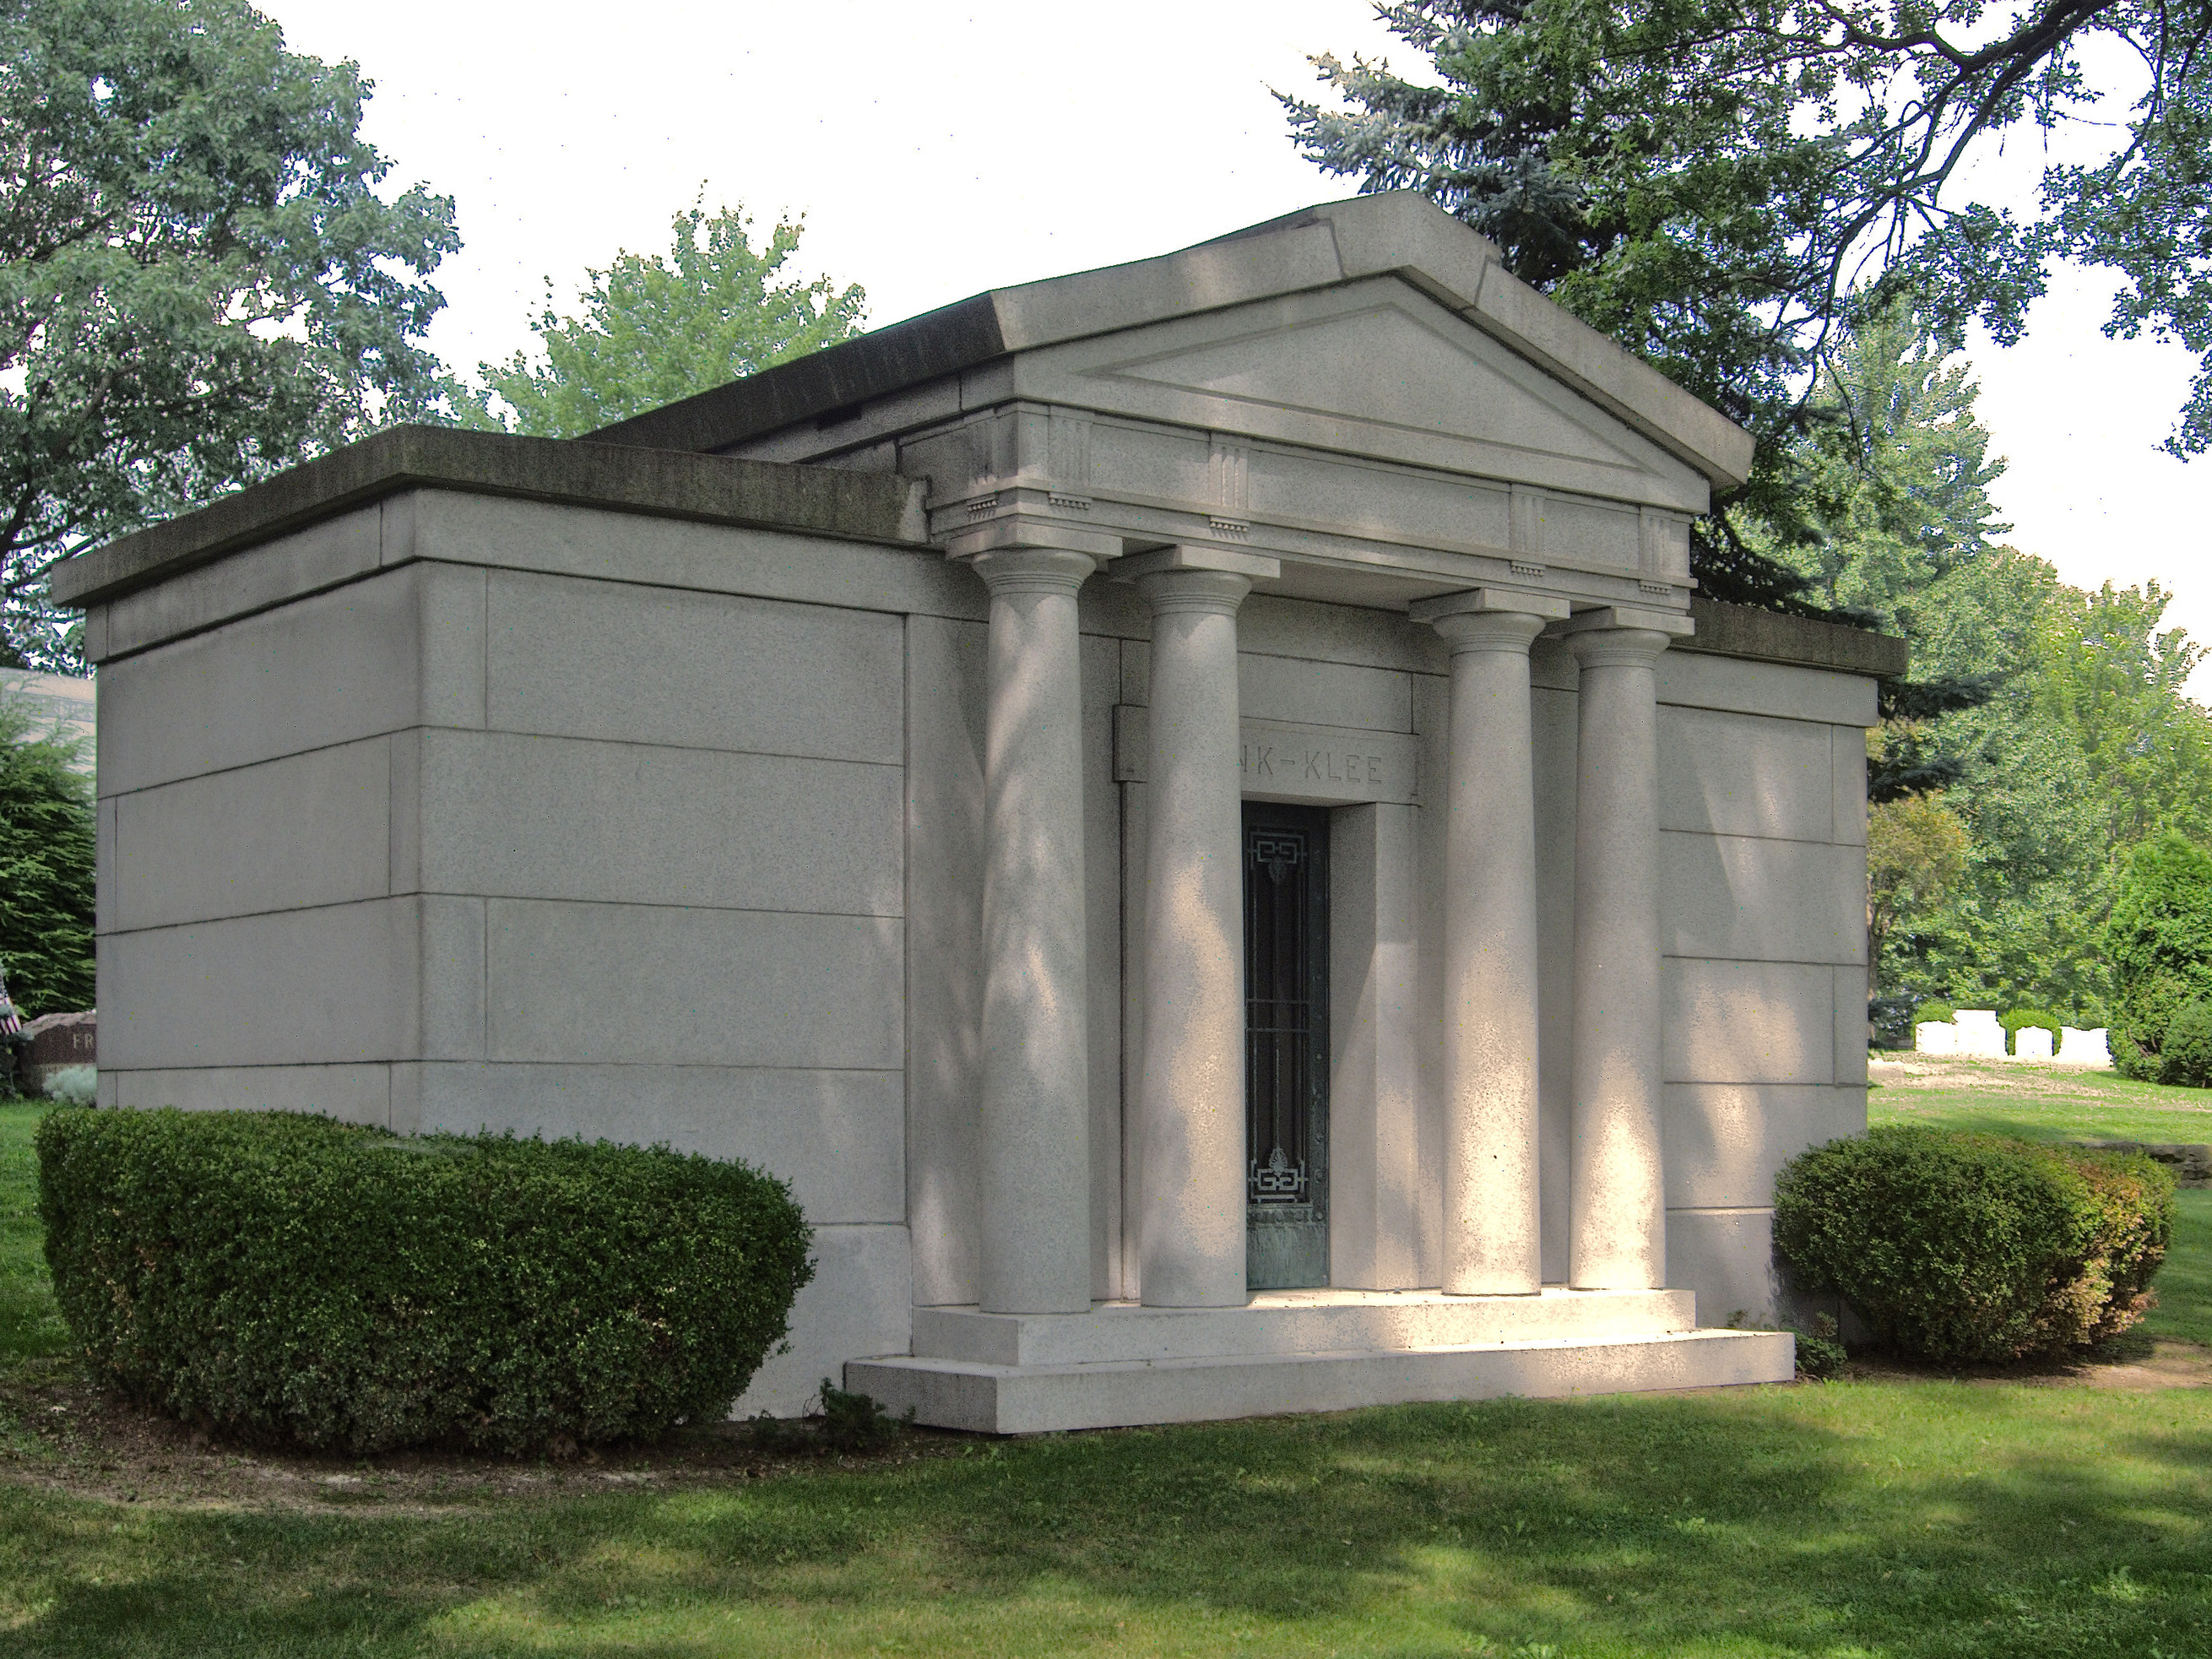 File:Frank-Klee Mausoleum, West View Cemetery, 2015-07-27 ...